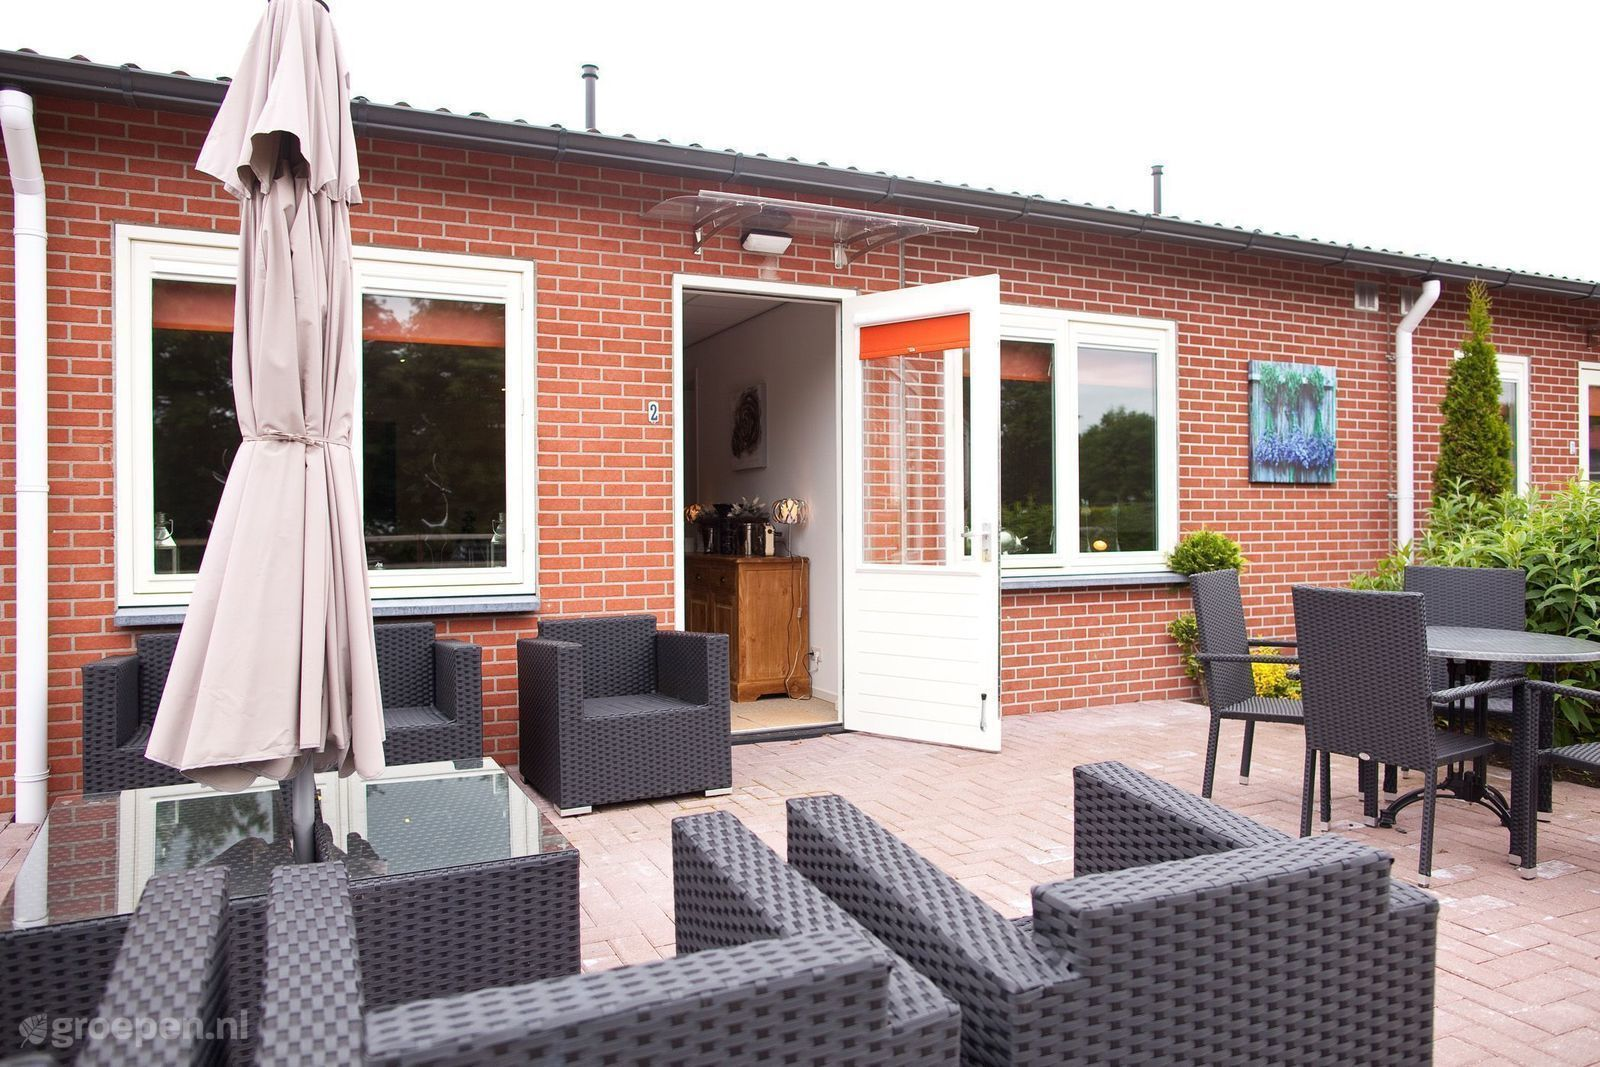 Group accommodation Hollandscheveld